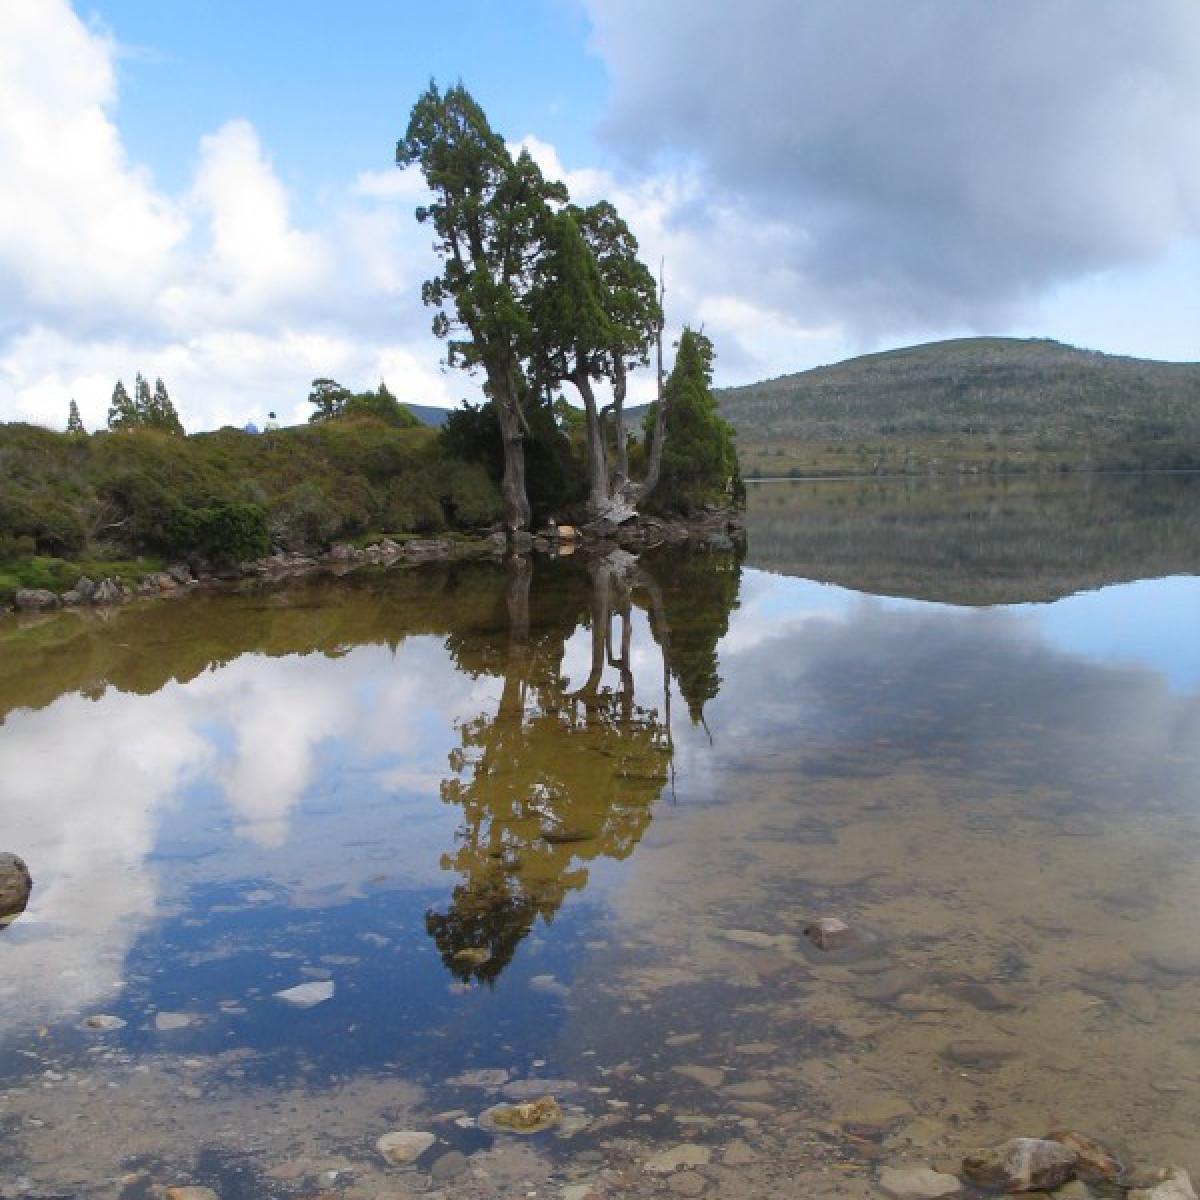 Reflections on the Overland Track - Tasmania